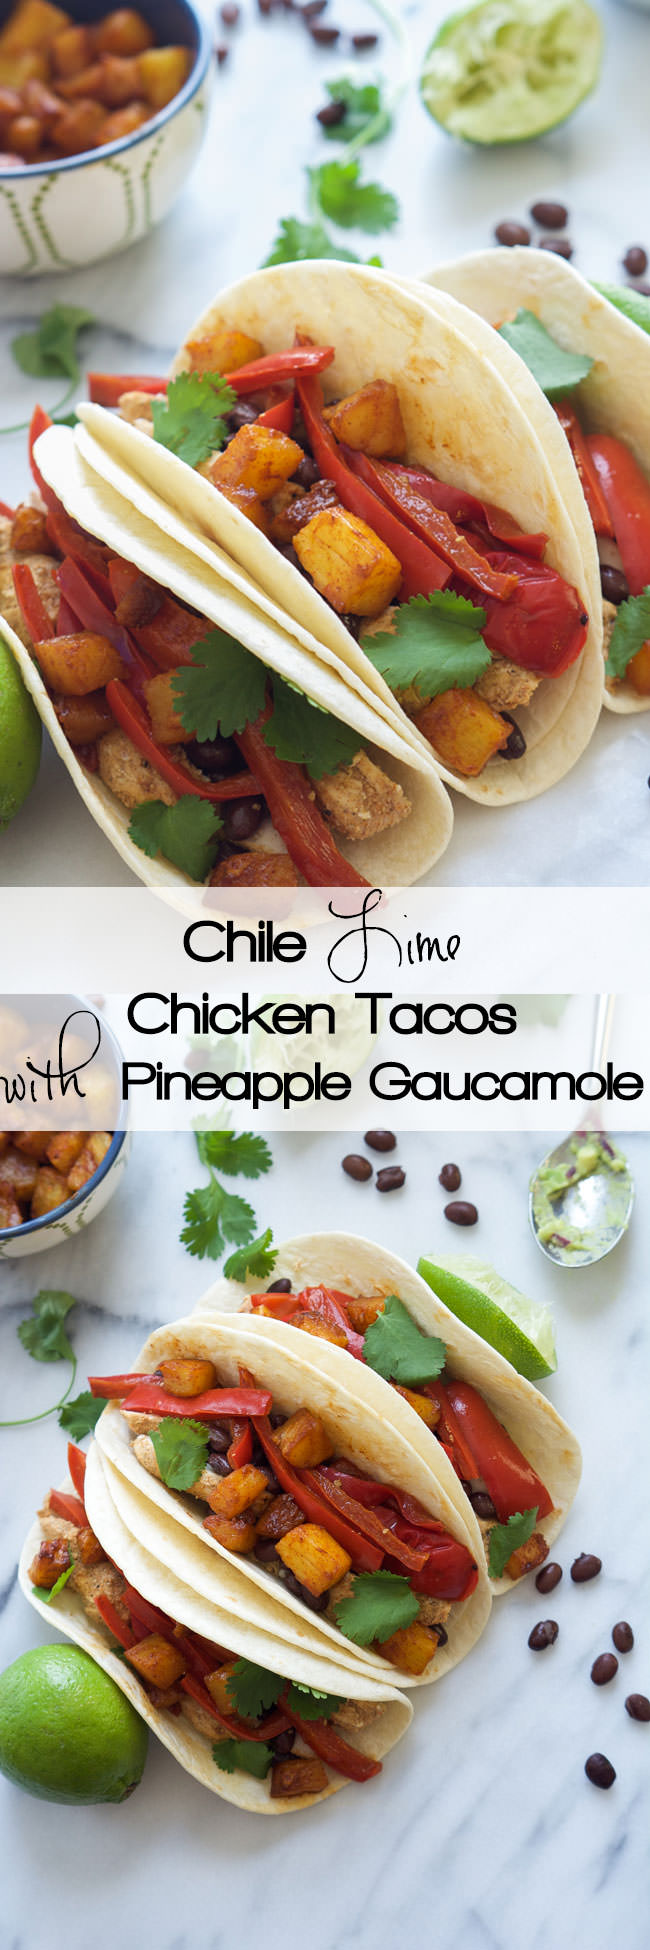 Spicy and citrus Chile Lime Chicken Tacos with Pineapple Guacamole are easy to make and topped with creamy avocado they are the perfect quick dinner!